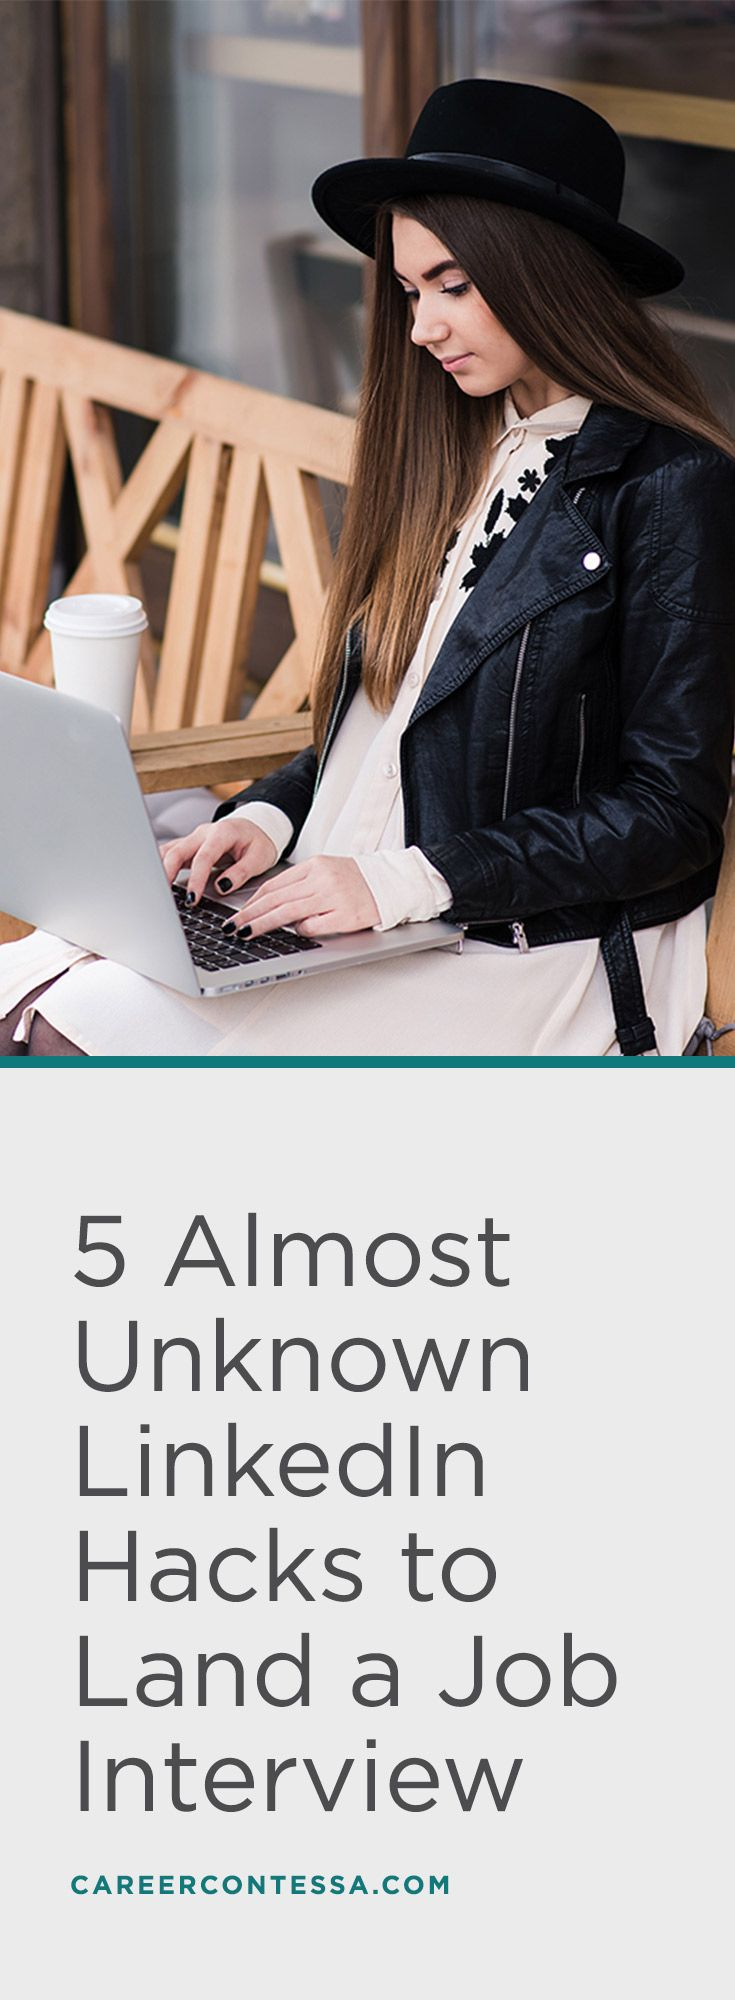 LinkedIn can be a bit tricky, but is also the best way to move forward when you're searching for a new job. Make sure you know the LinkedIn hacks that most other candidates aren't using to land your dream job. | CareerContessa.com